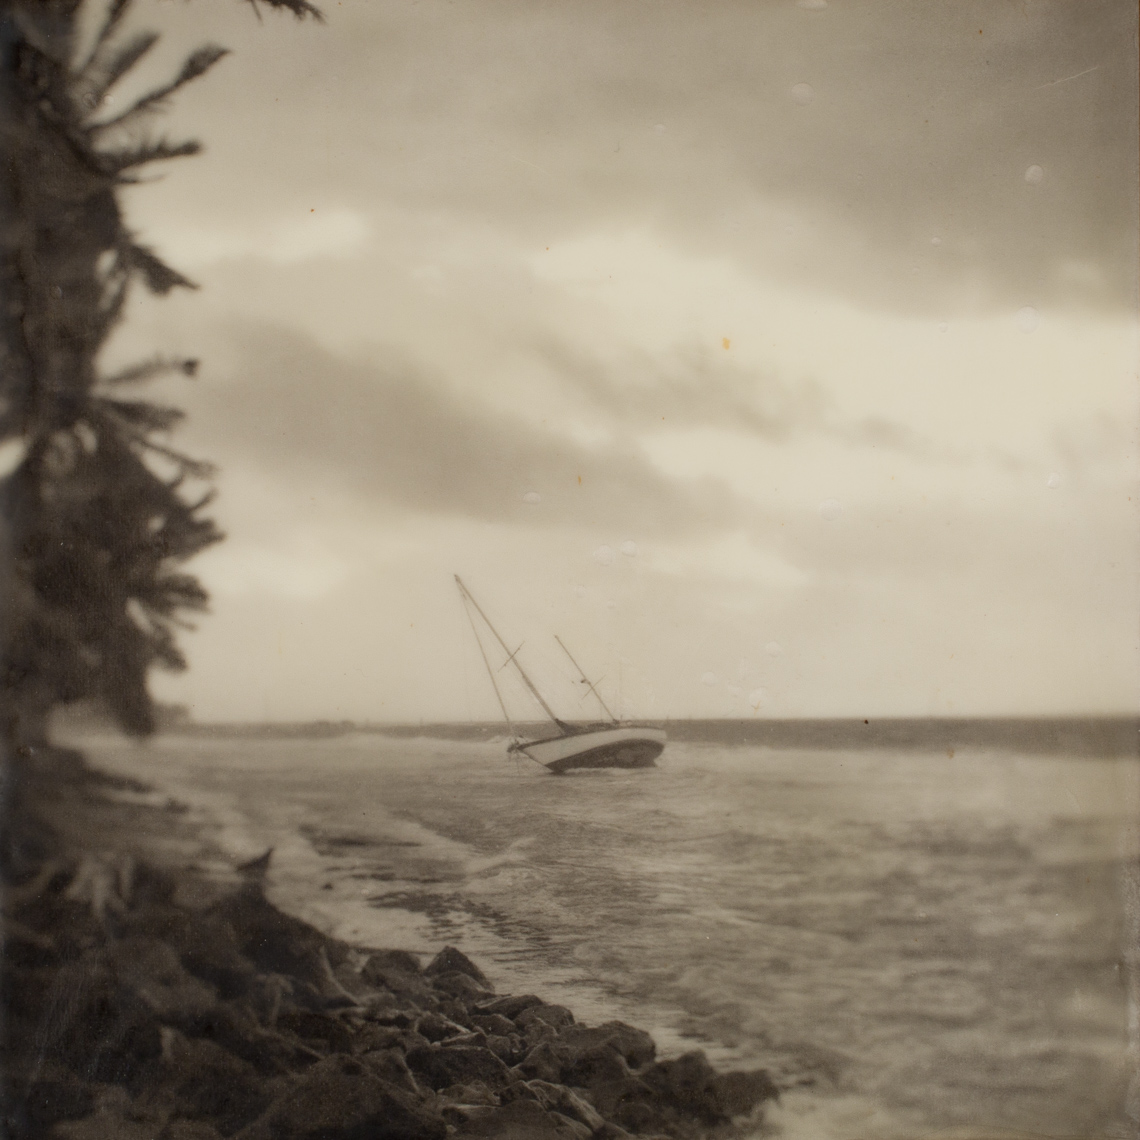 Maui, Grounded Sailboat